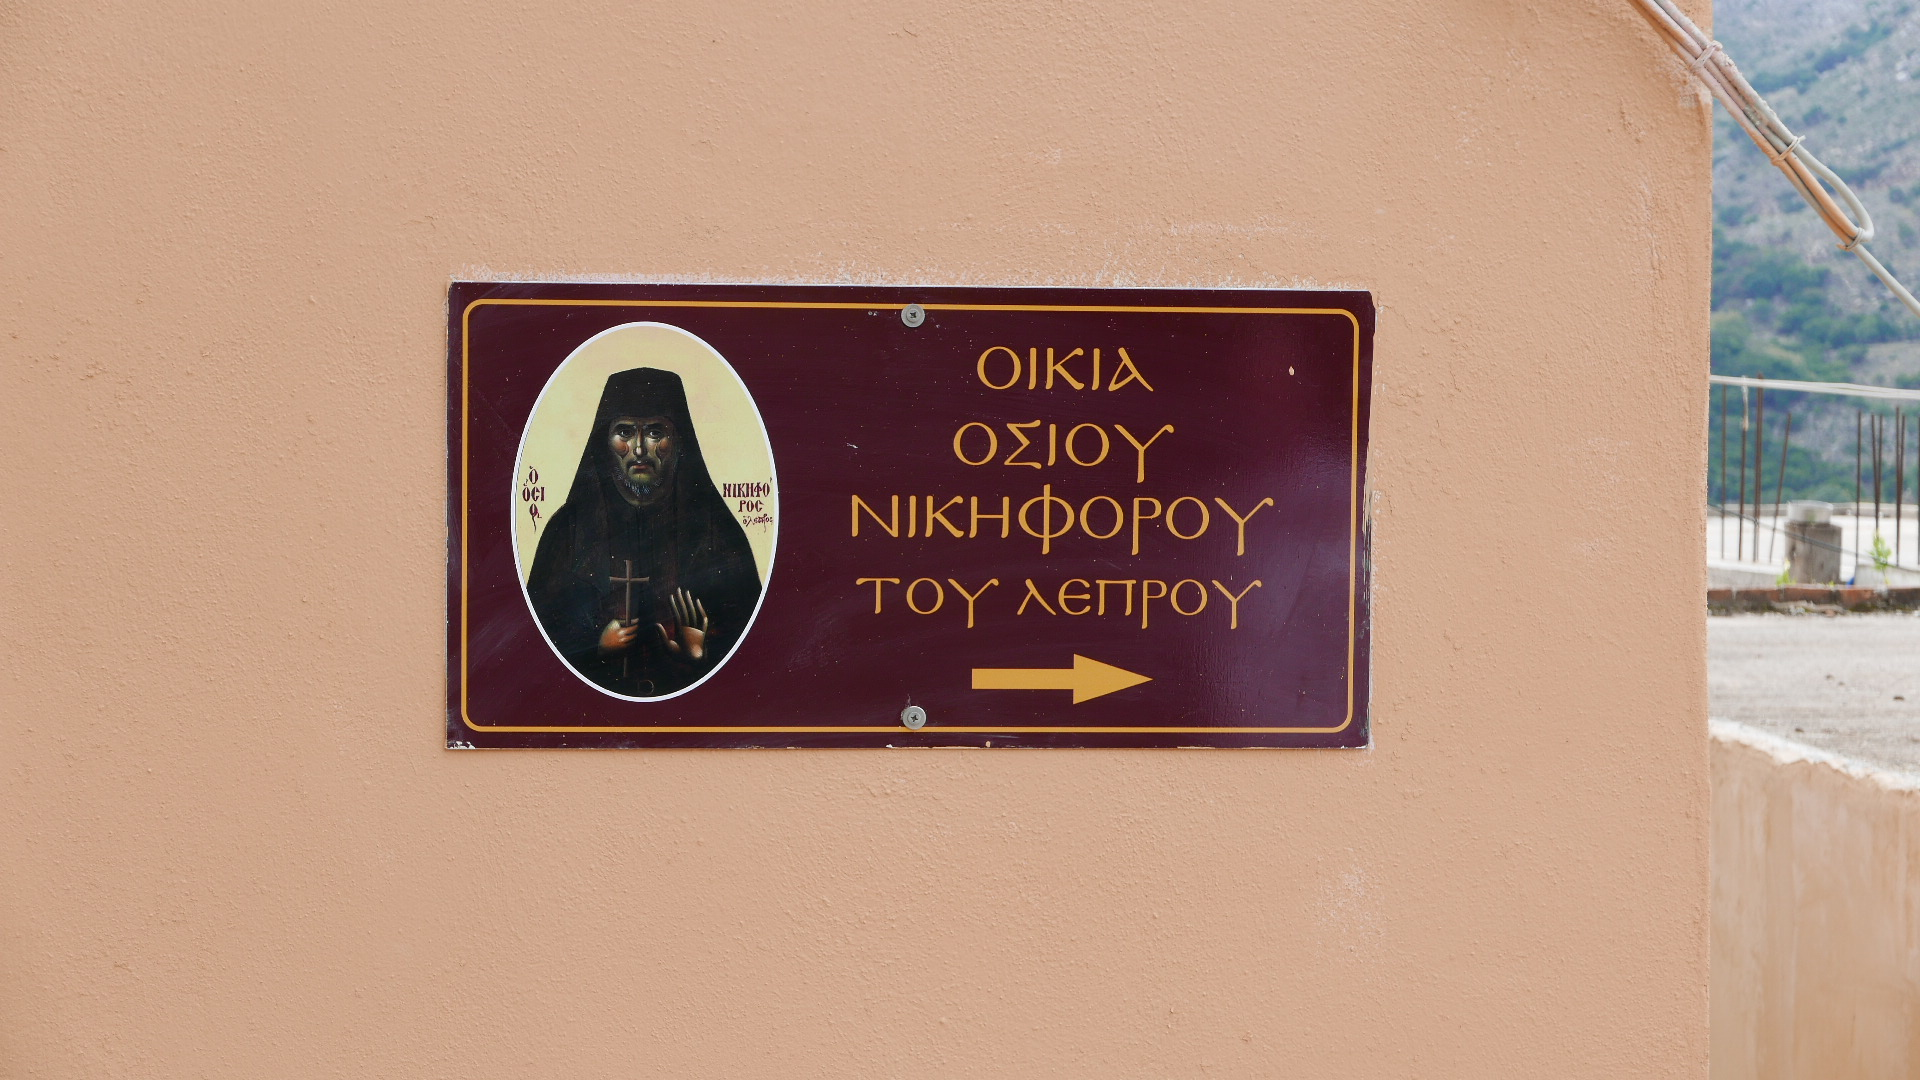 Ceremonie for Saint Nikephoros of The Lepre